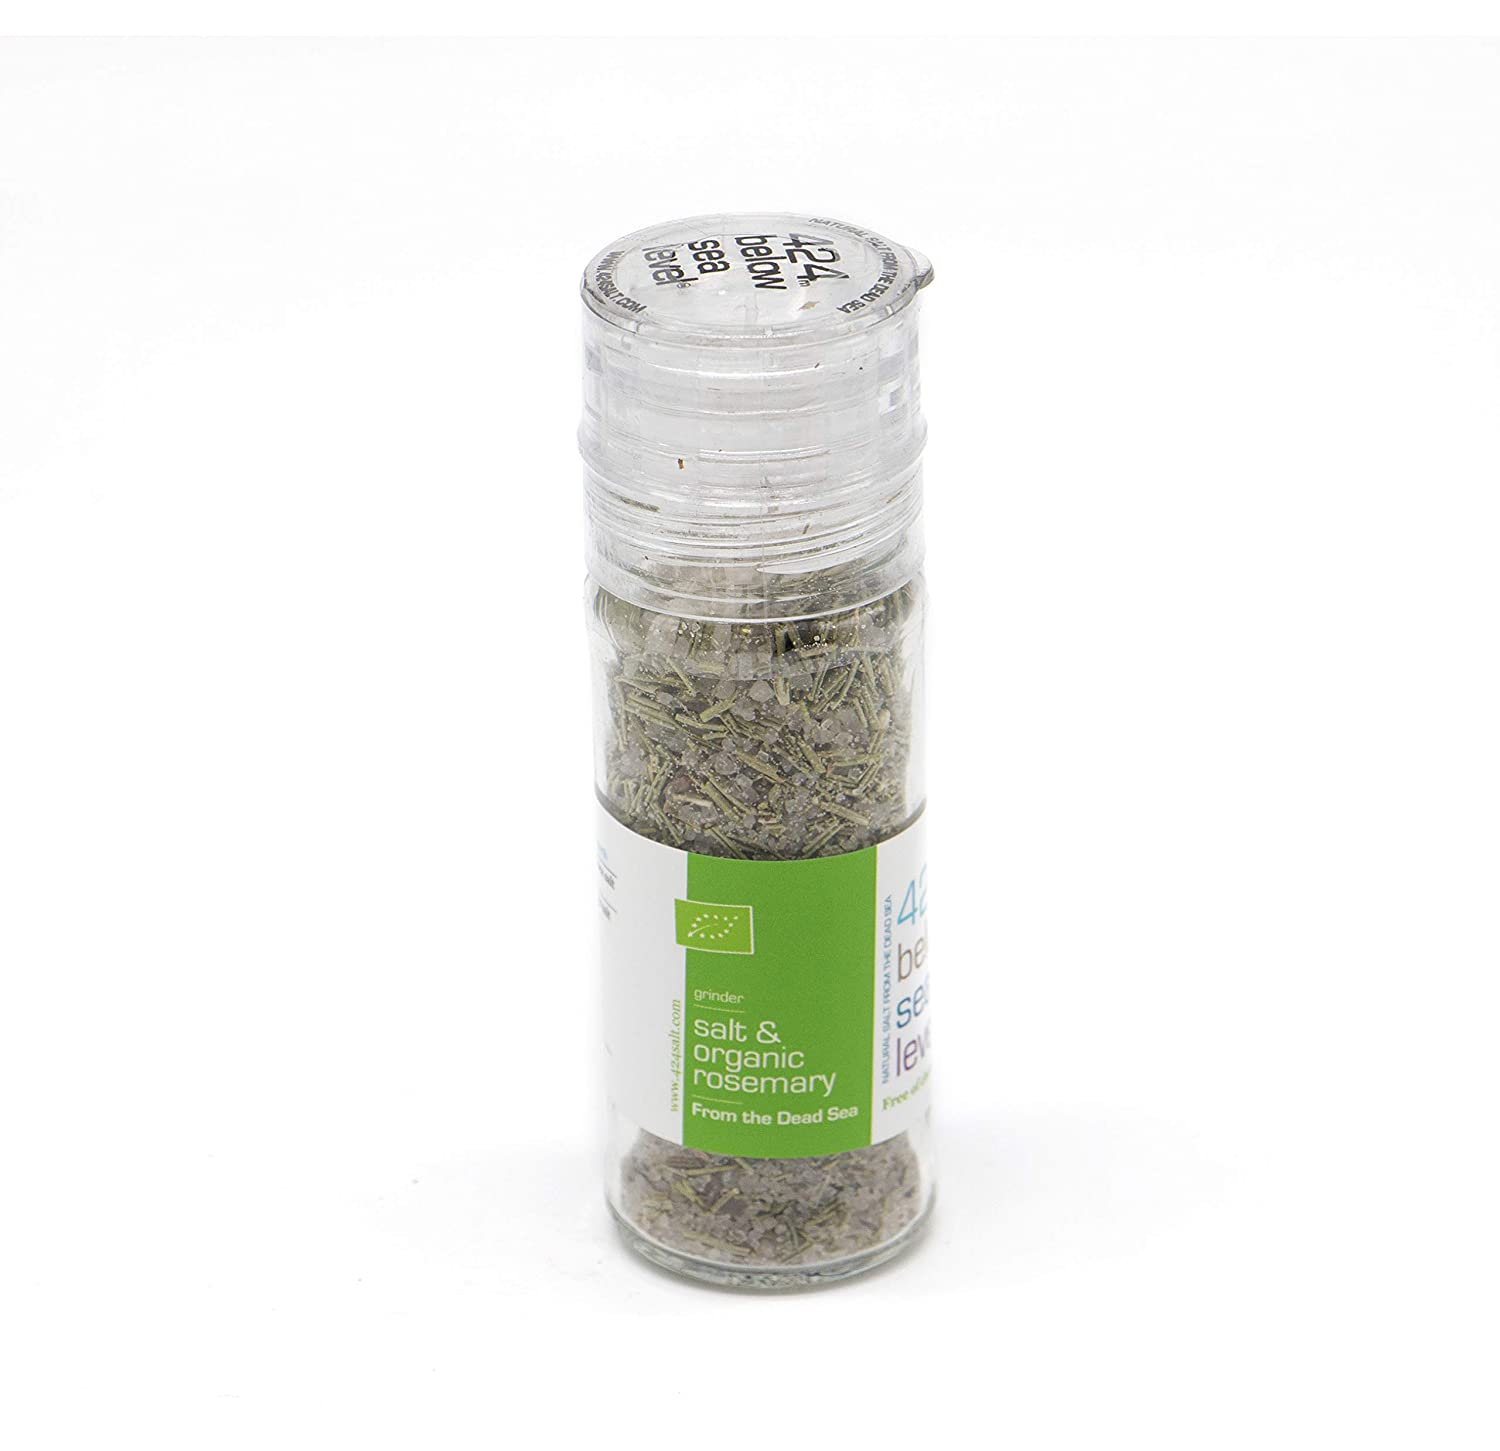 Salt & Organic Rosmary Gourmet Salt From The Dead Sea 3.87oz / 110 grams